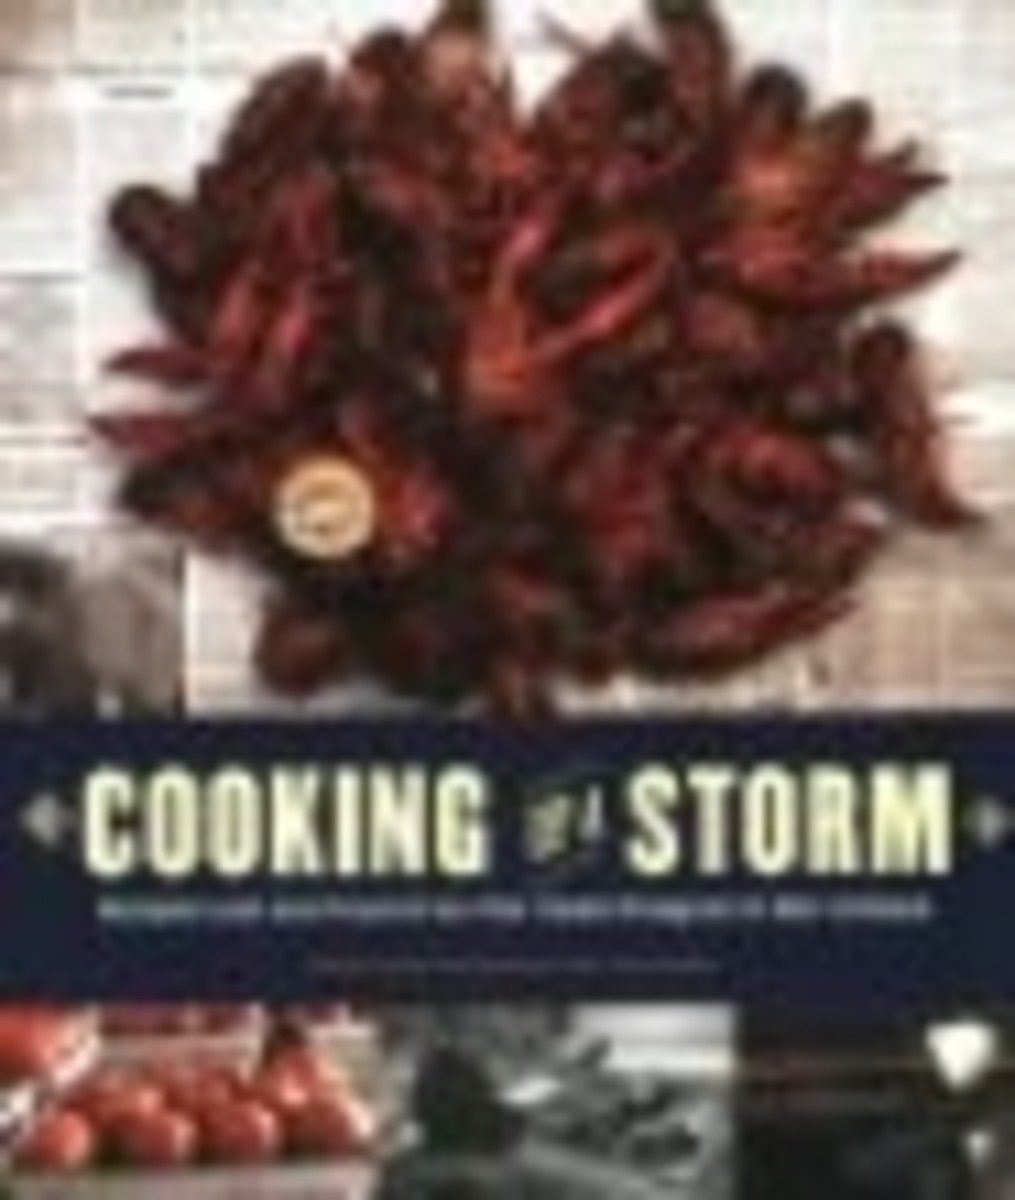 Cooking Up a Storm Cookbook